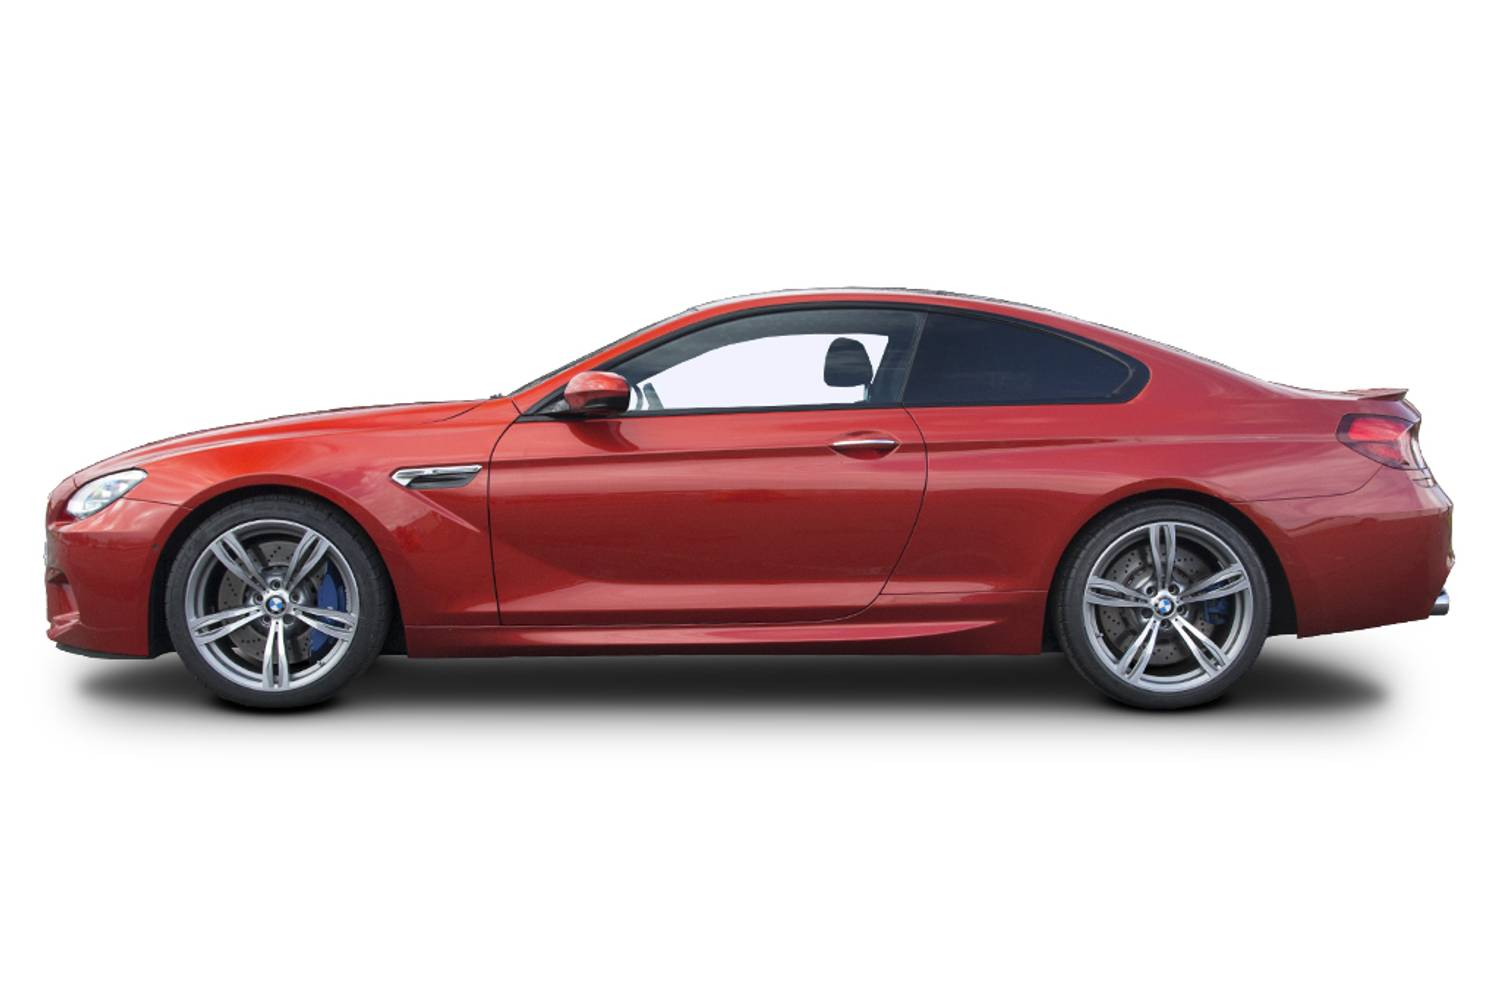 New Bmw 6 Series Coupe 650i 449 Ps Sport 2 Door Auto